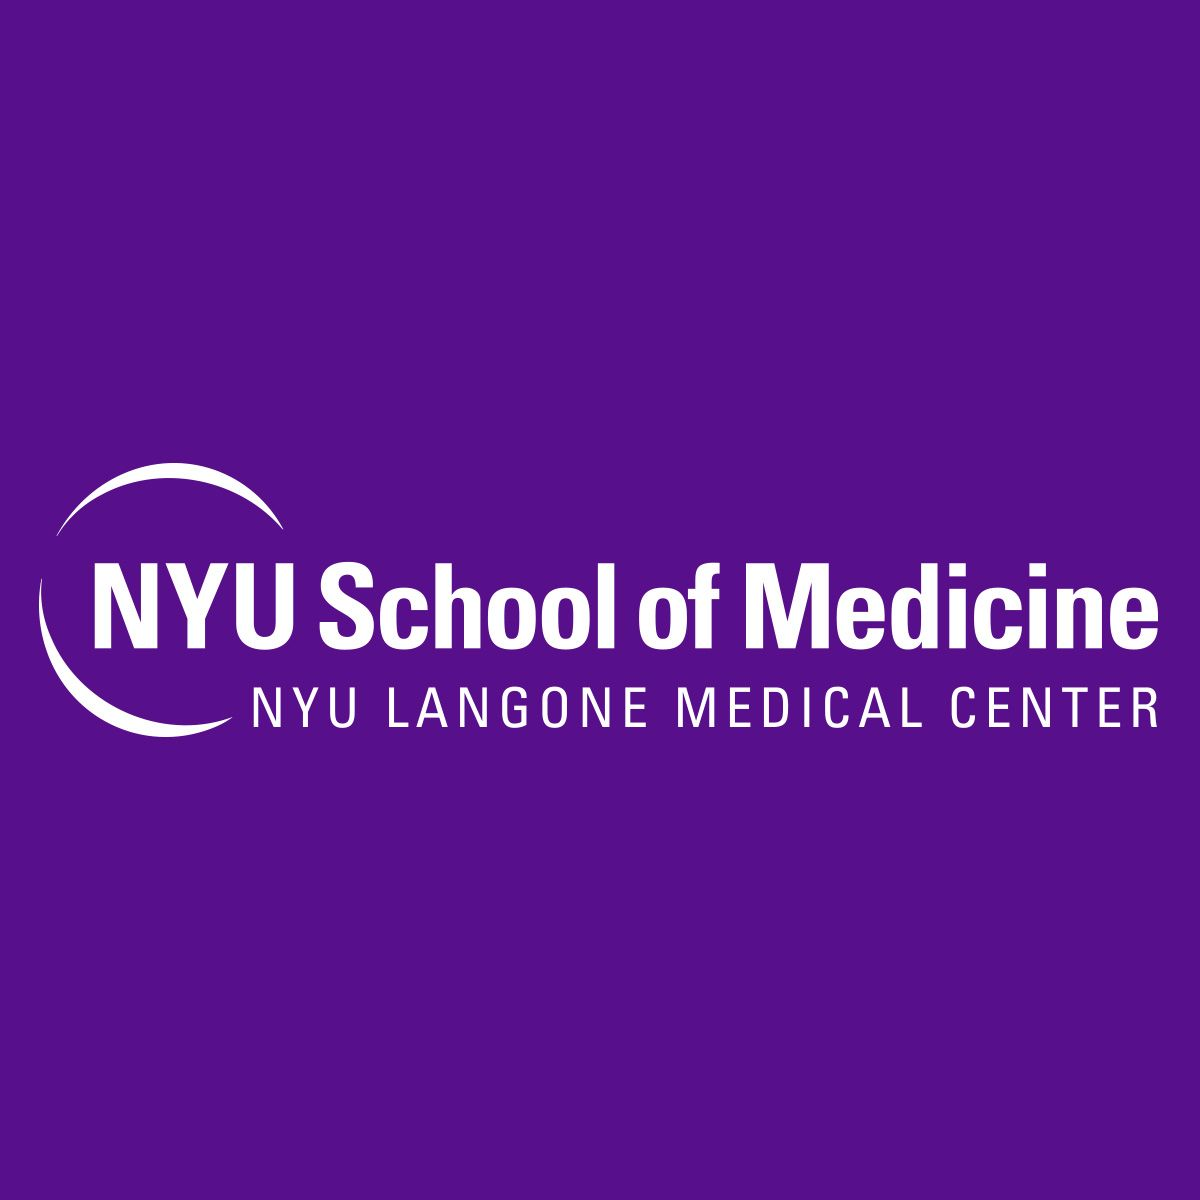 Nyu School Of Medicine S Three Year Md Pathway Offers Students Early Entry Into A Variety Of Medical Specialties As Well As School Of Medicine Nyu Nyu Nursing